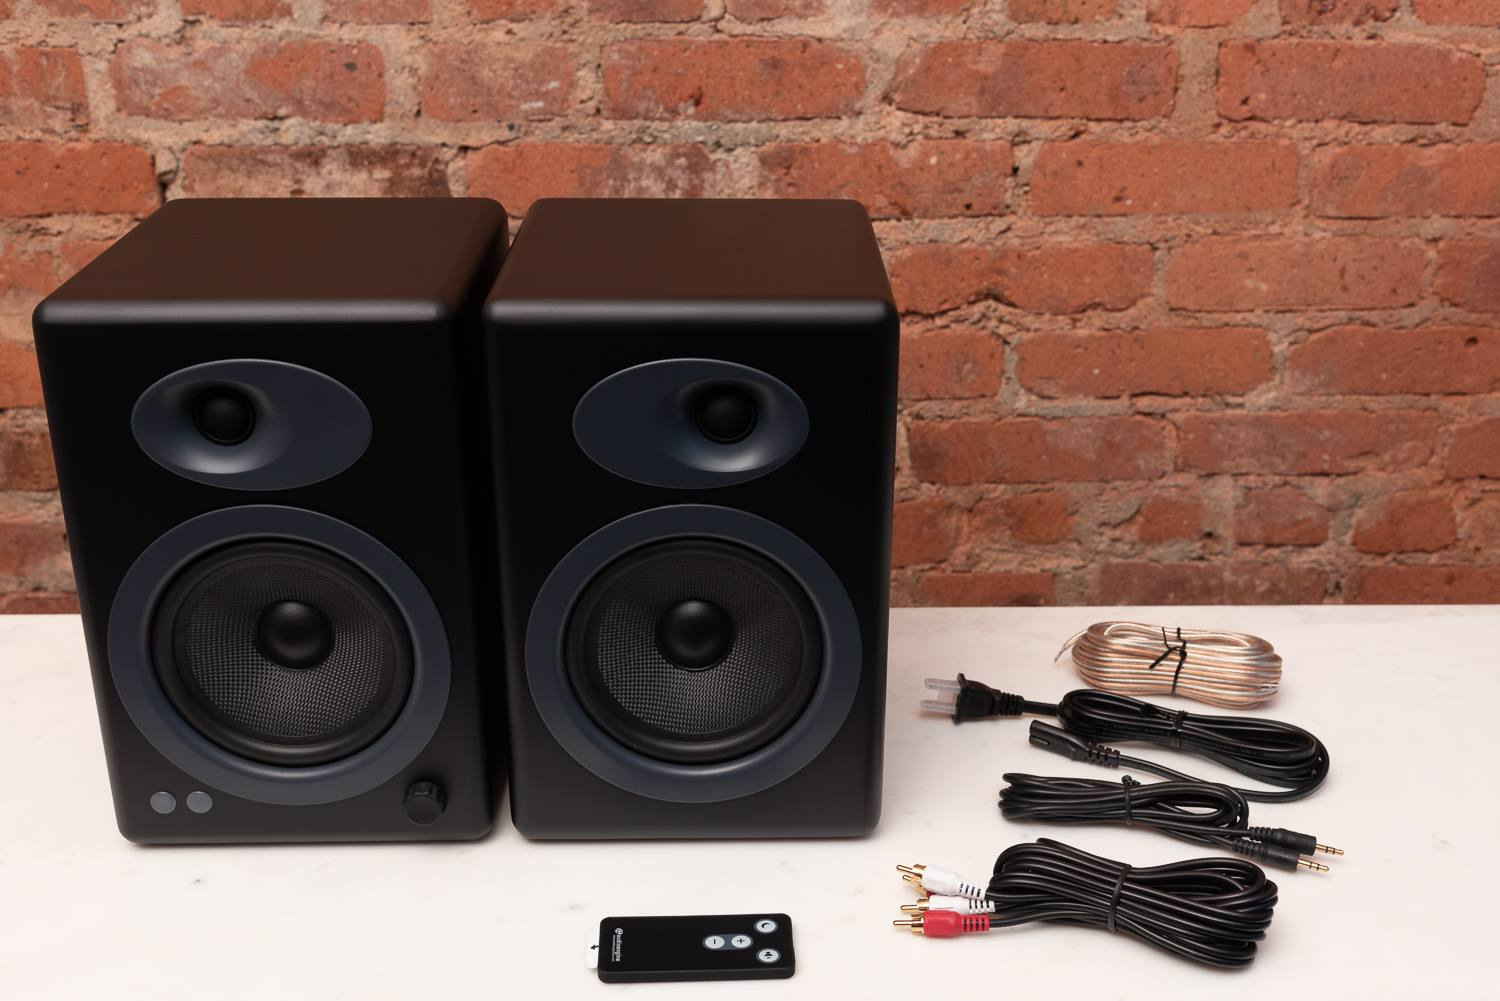 Audioengine A5+ Speakers Review